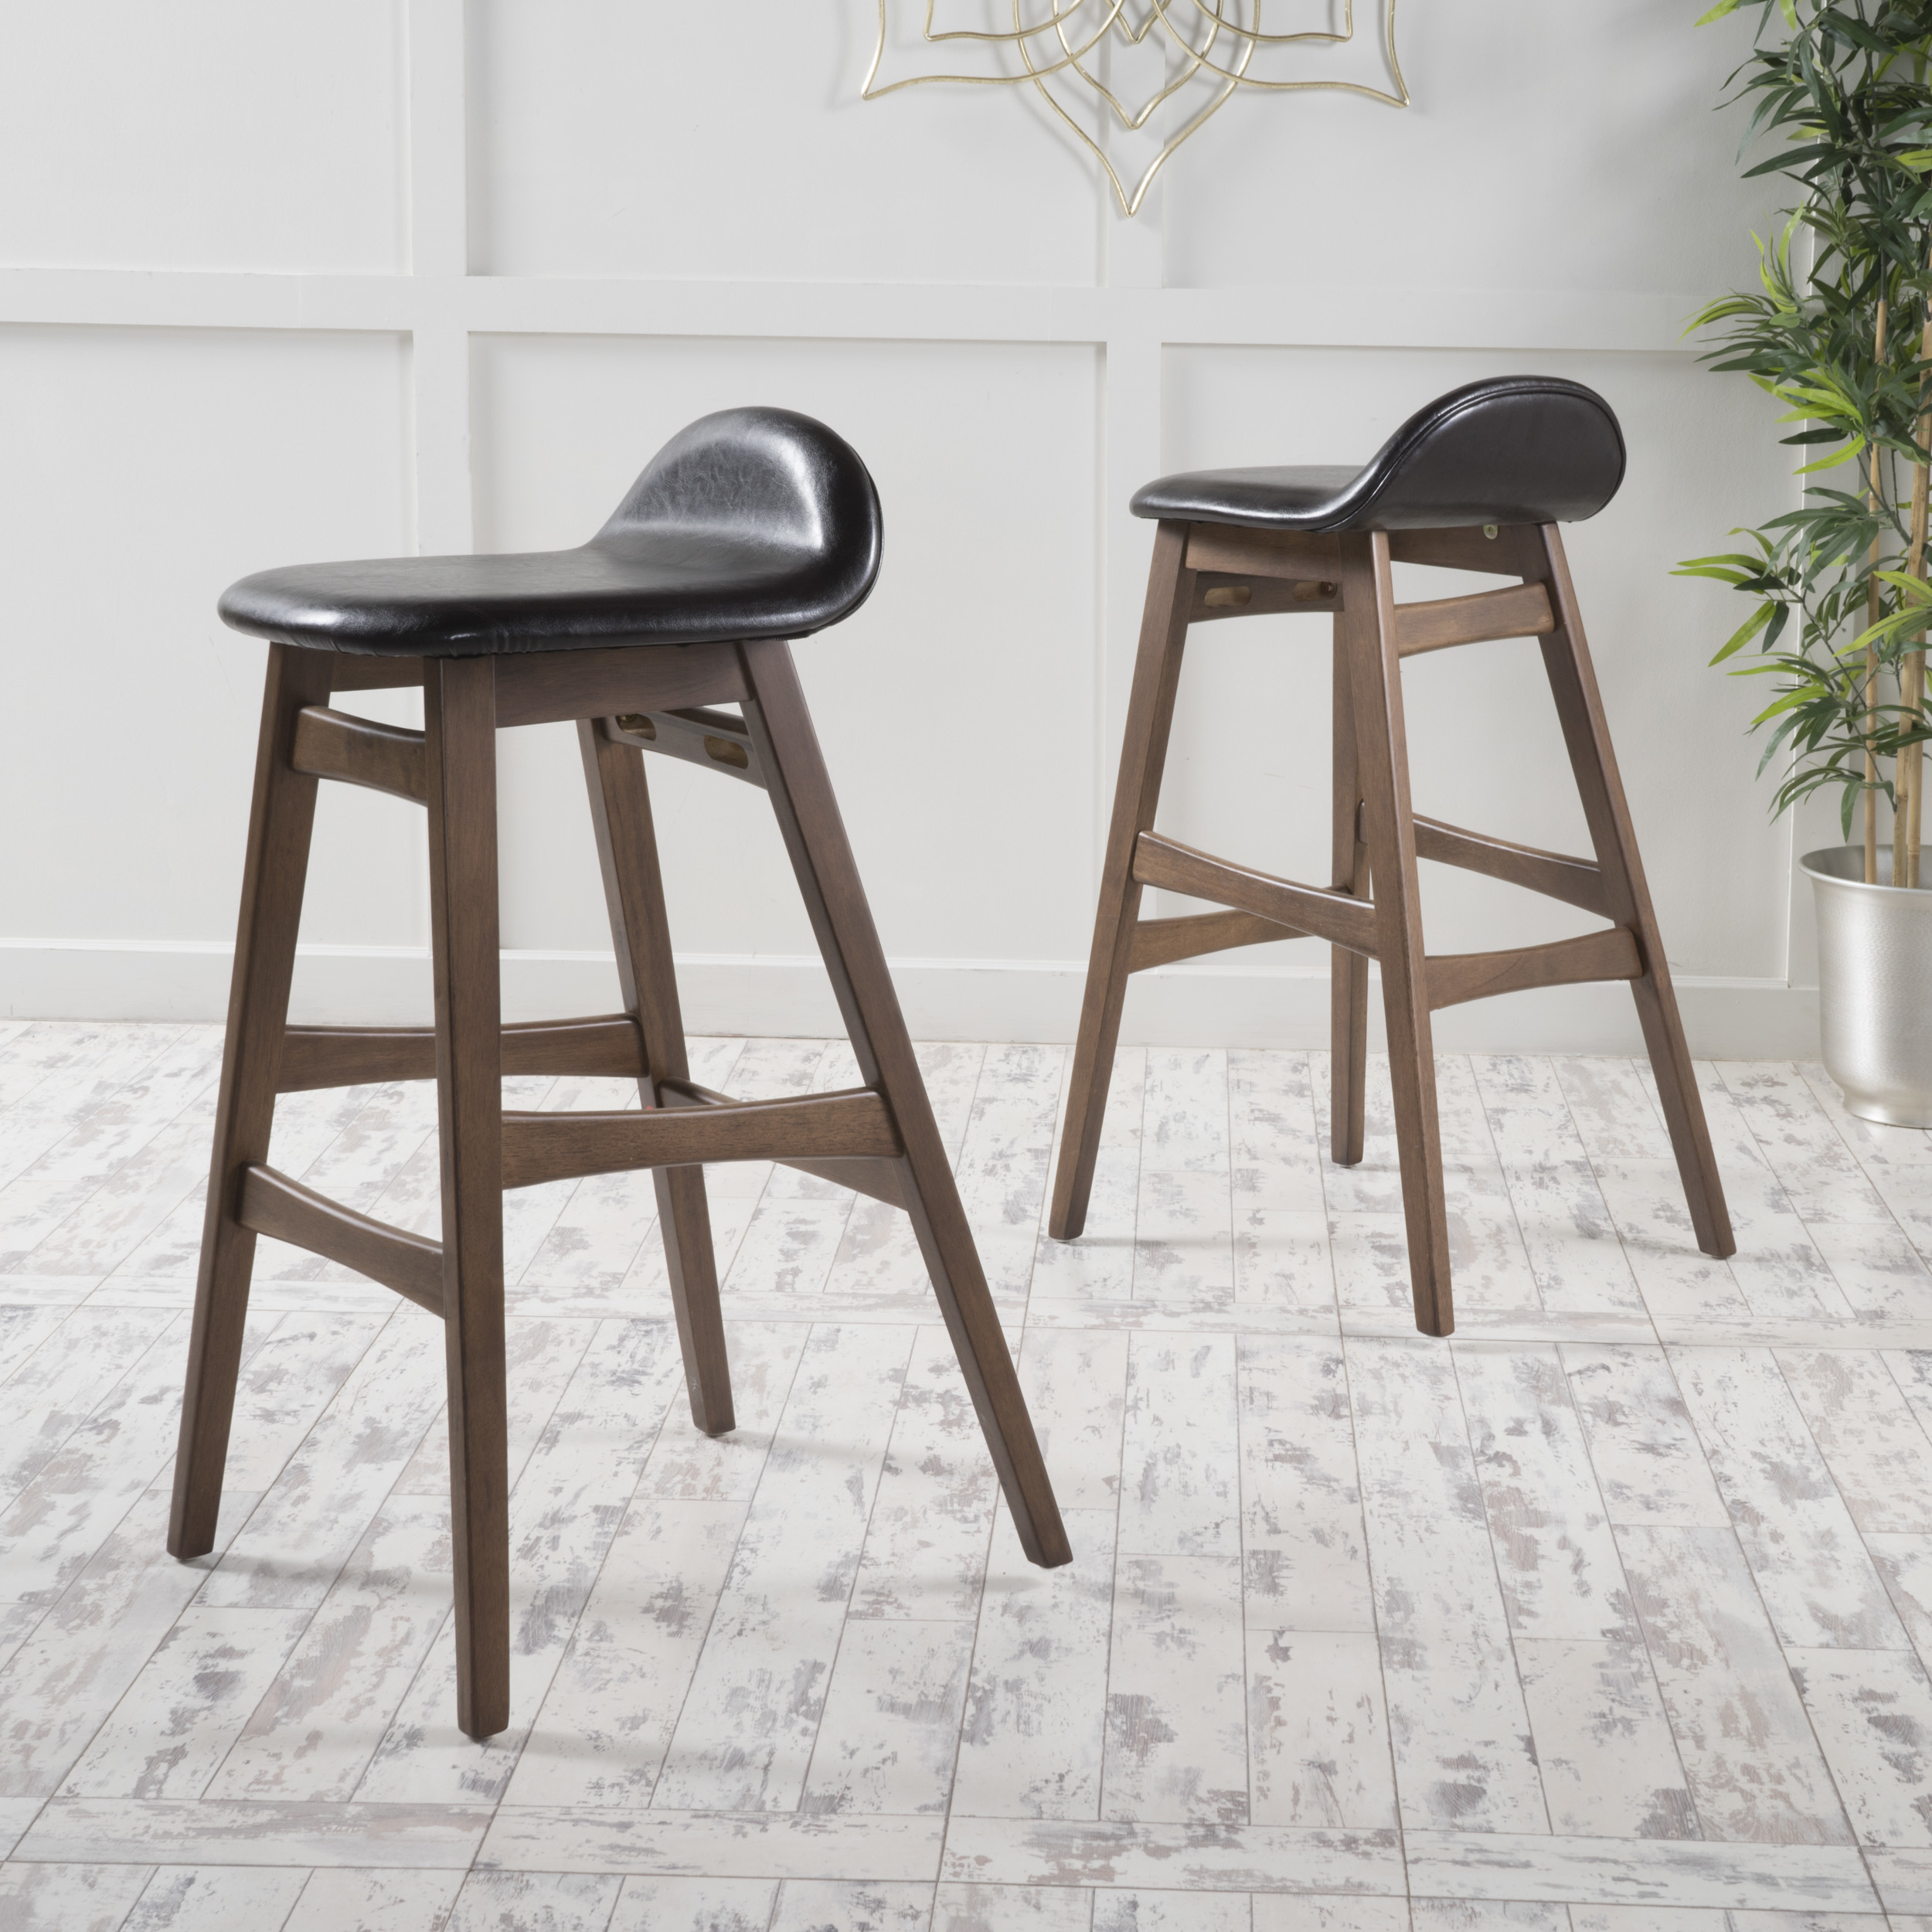 Margaret Dark Brown Leather/ Walnut Finish Bar Stool (Set of 2) ...